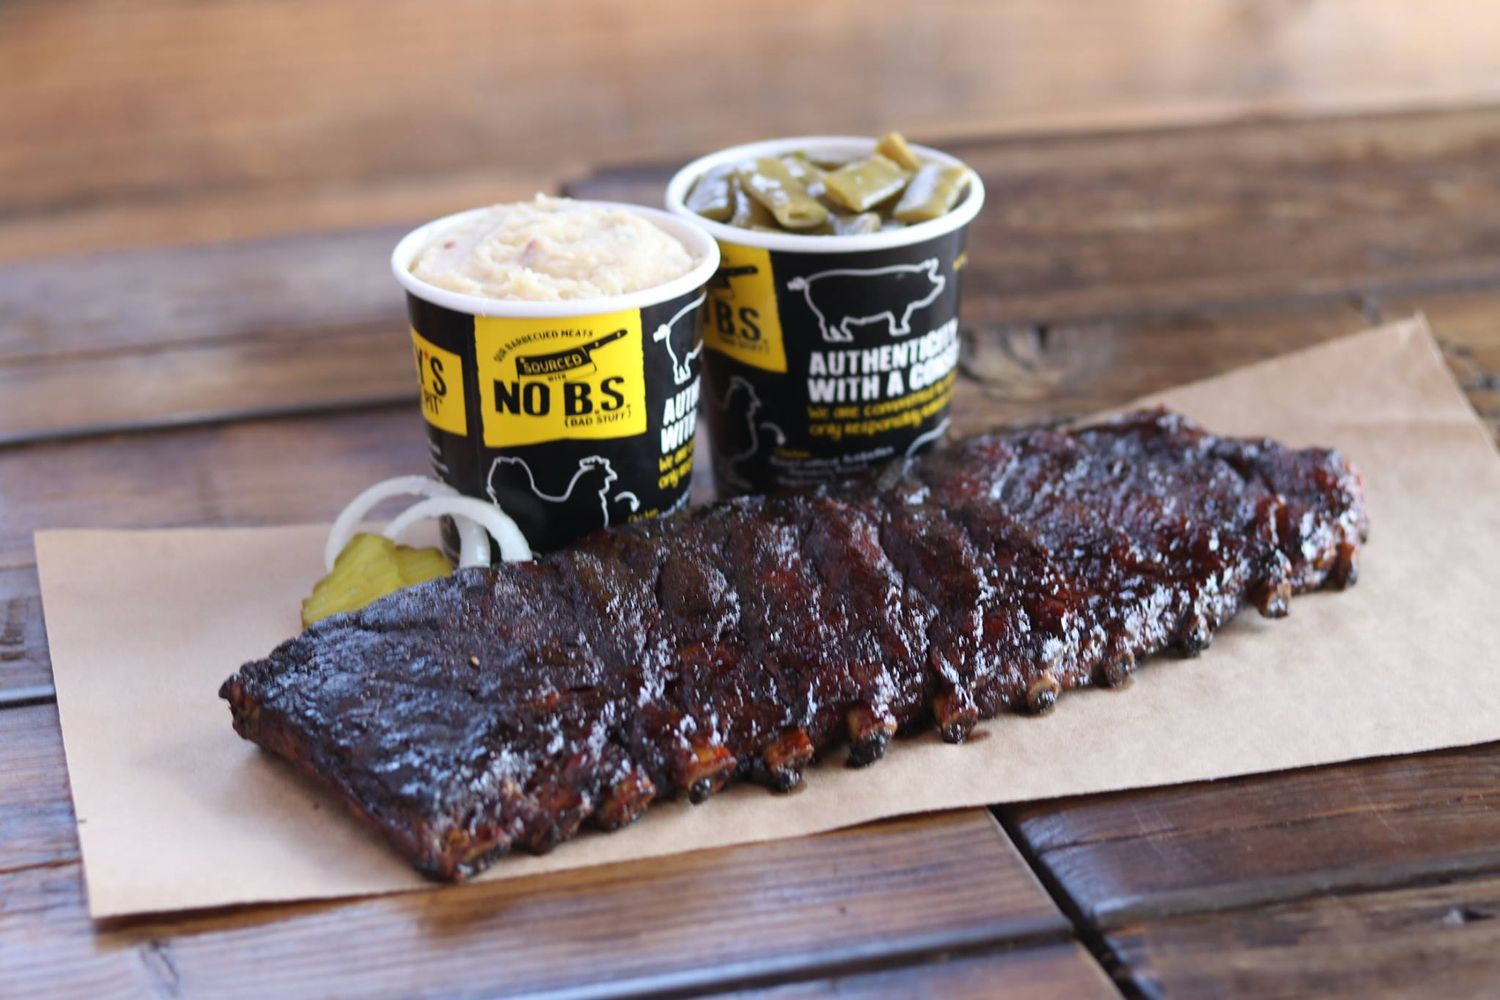 Franchising Trio Brings Dickey's Pit-Smoked Barbecue to Rolla, MO